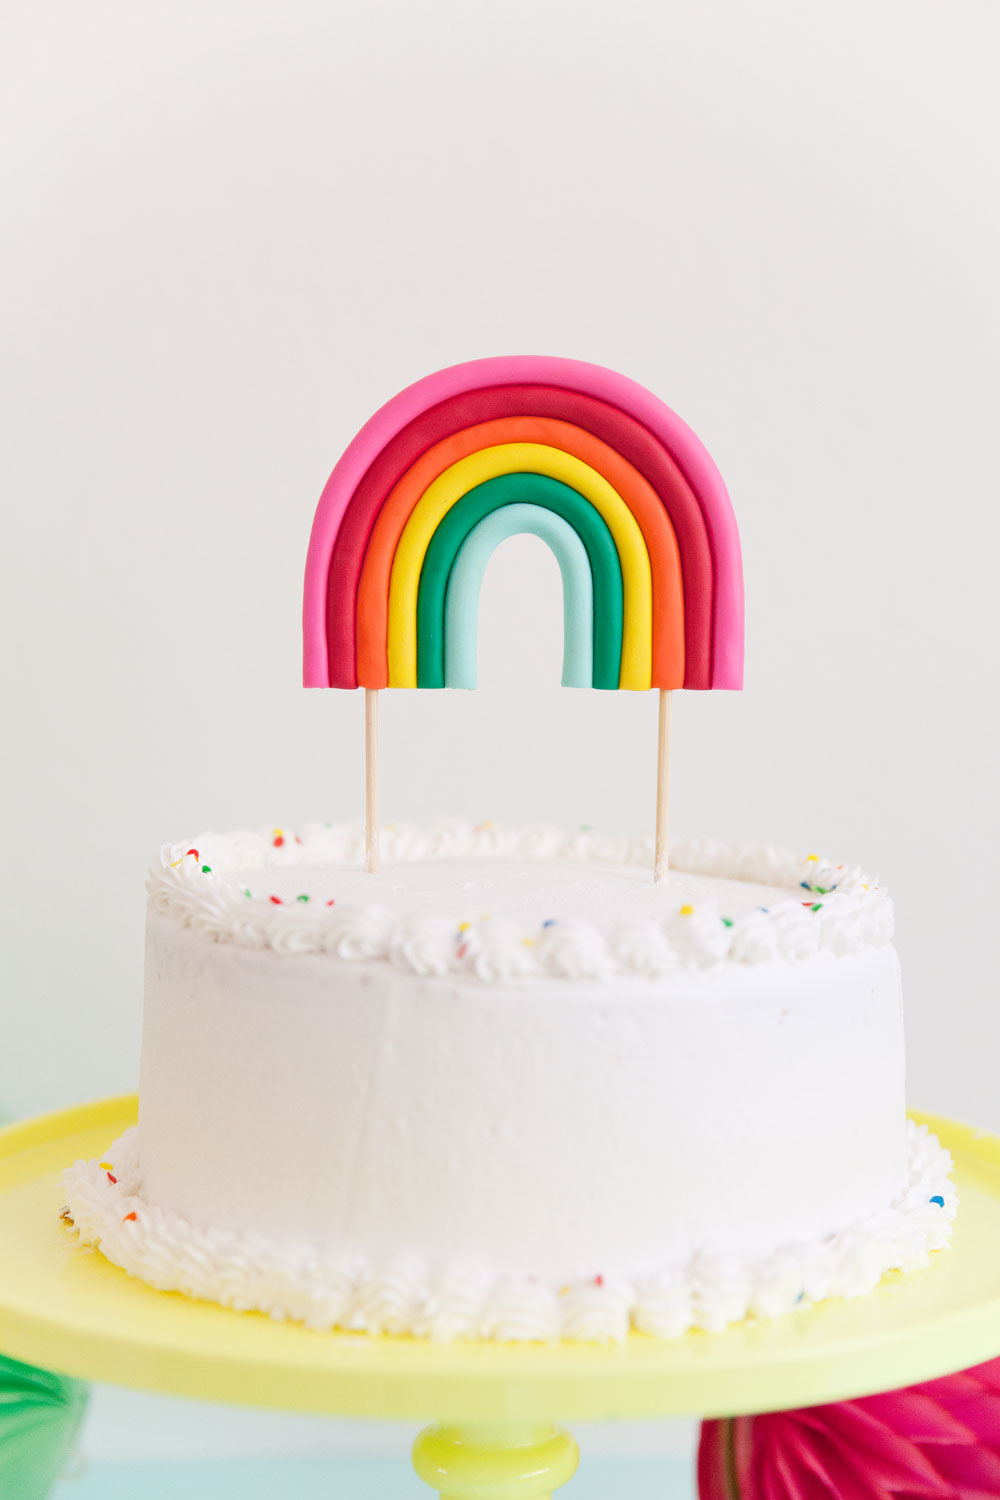 Make this adorable DIY rainbow cake topper! Perfect for any rainbow or unicorn themed birthday parties.